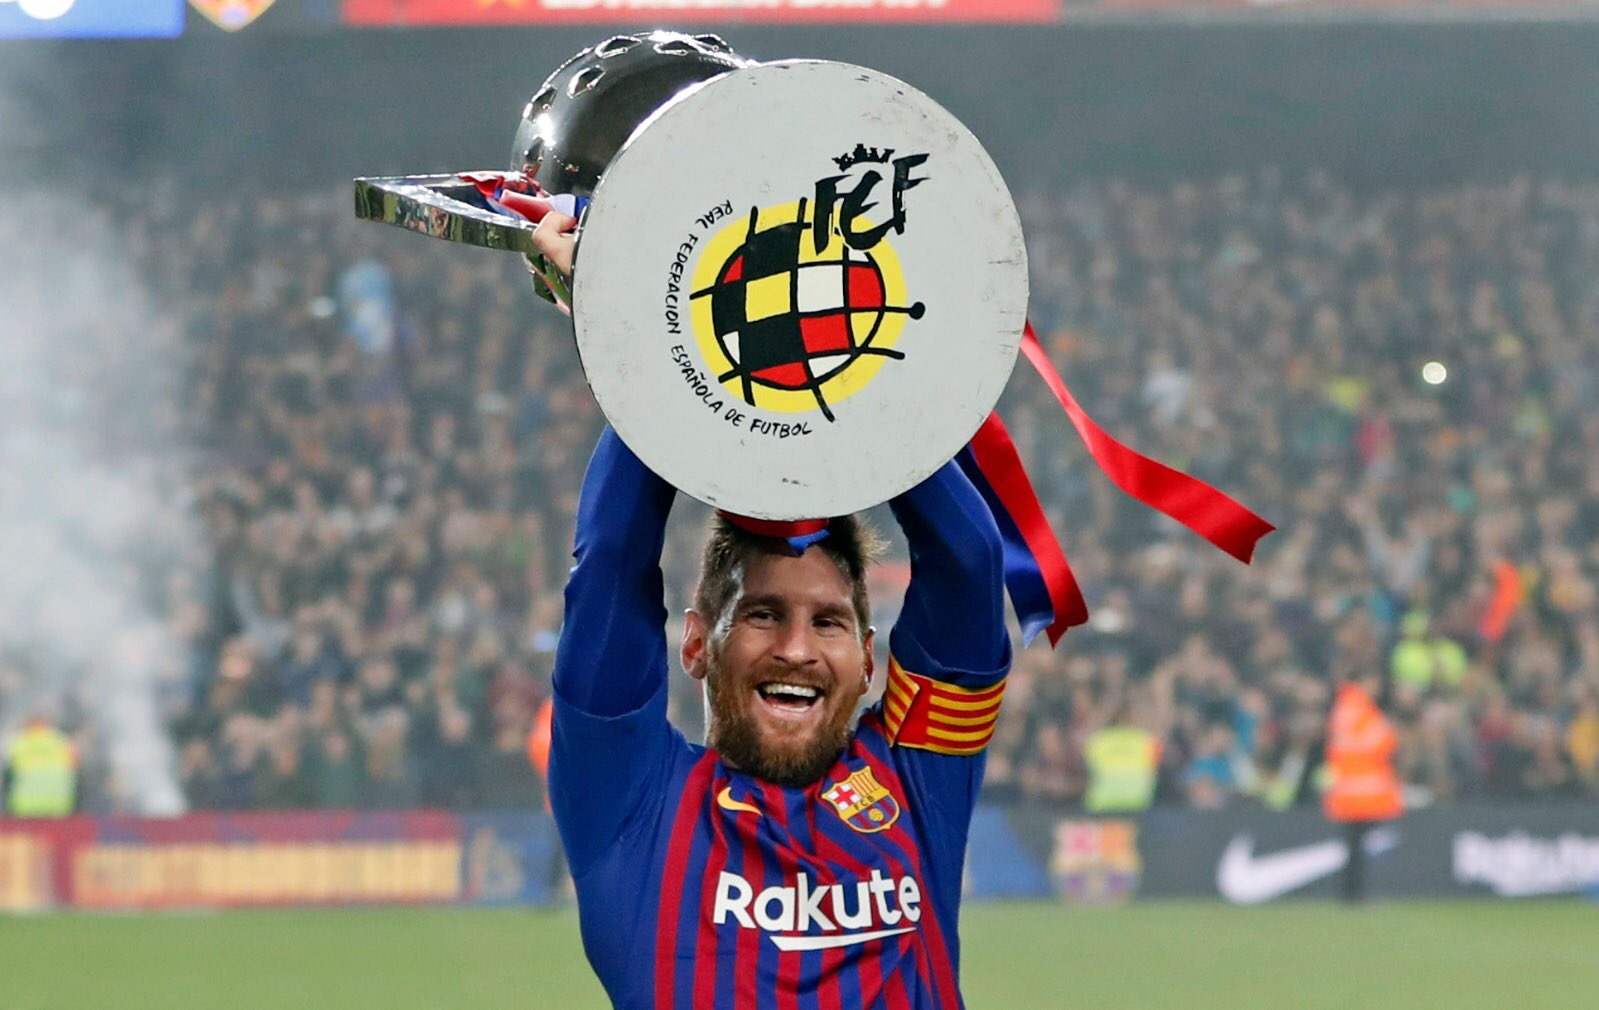 No.10 owns LaLiga: Messi secures his 10th league crown and makes it 34 trophies as a Barça player